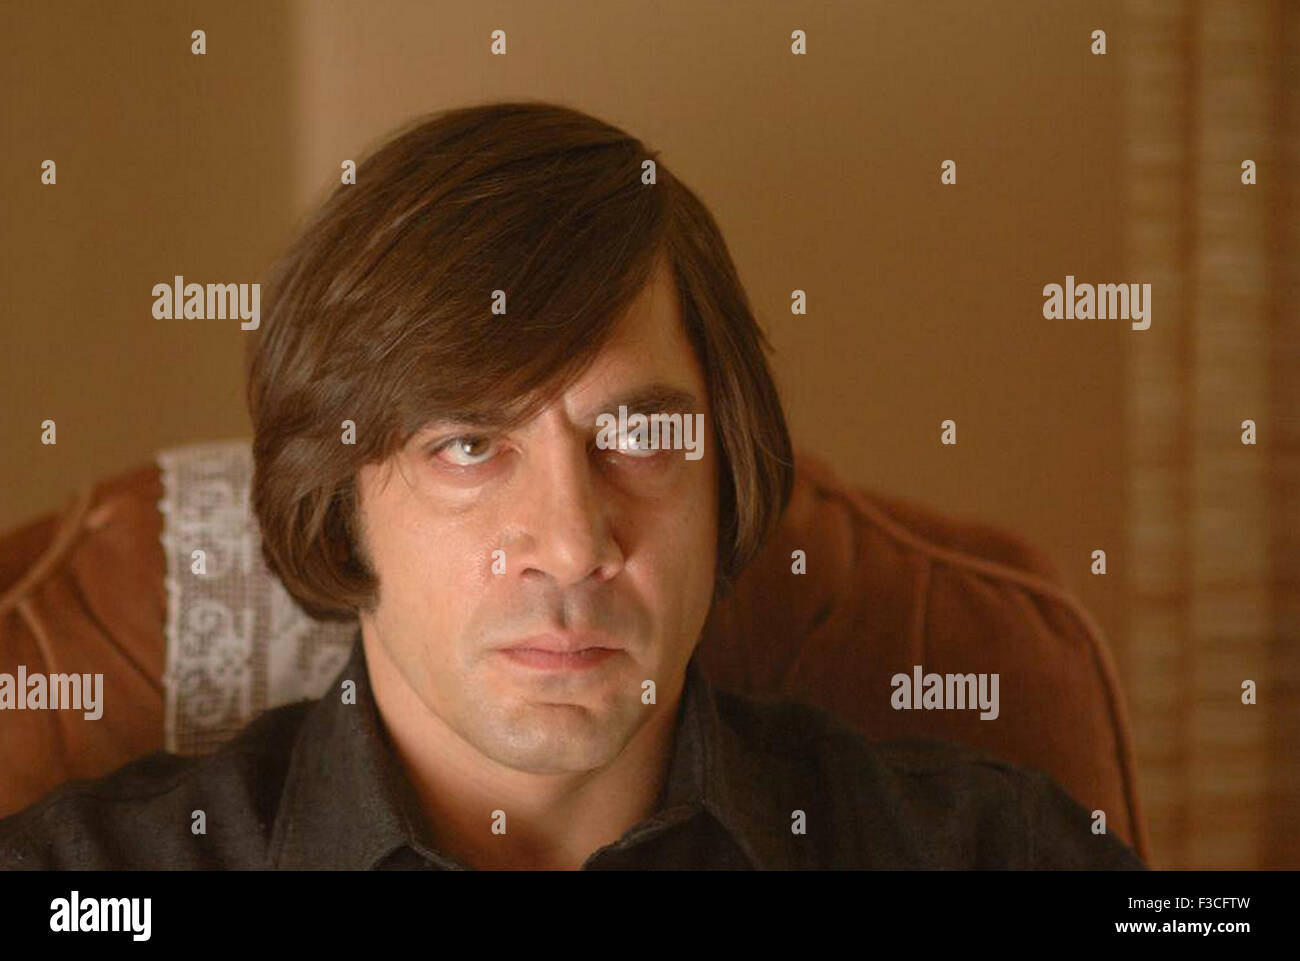 NO COUNTRY FOR OLD MEN 2007 Paramount Vantage film with Javier Bardem - Stock Image